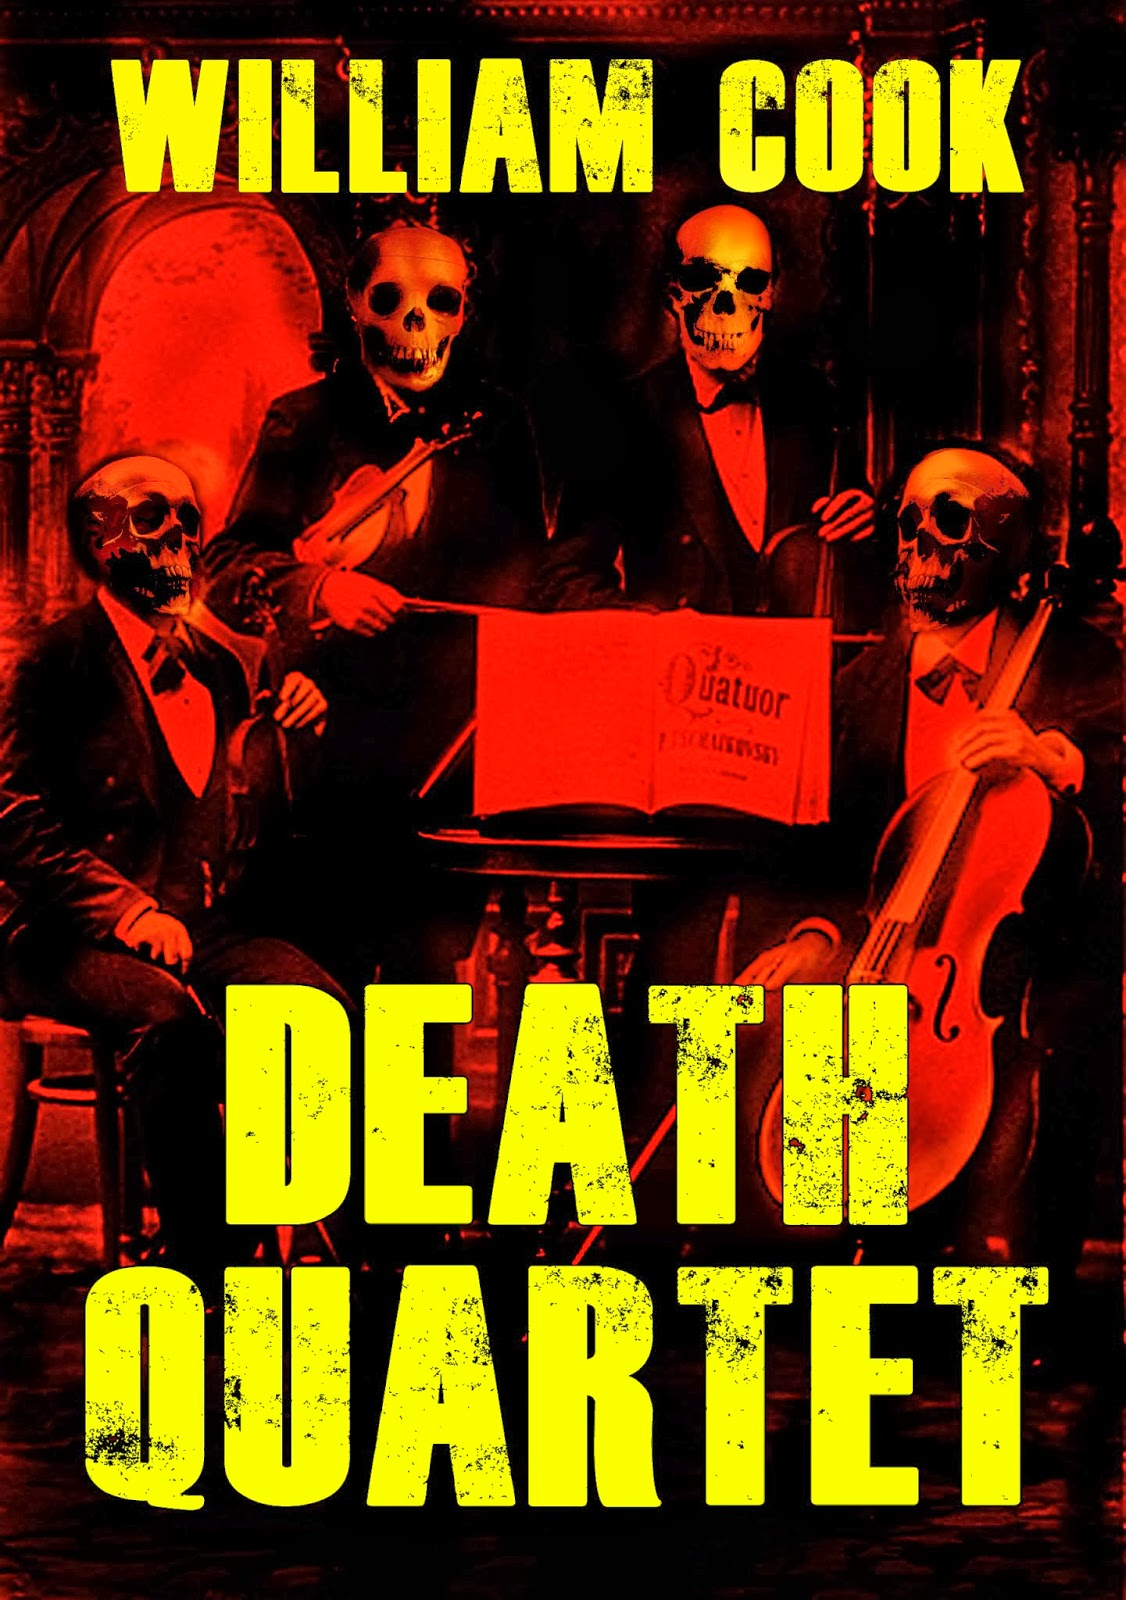 http://www.amazon.com/Death-Quartet-Short-Horror-Fiction-ebook/dp/B00FPT3MZQ/ref=la_B003PA513I_1_6?s=books&ie=UTF8&qid=1405901050&sr=1-6